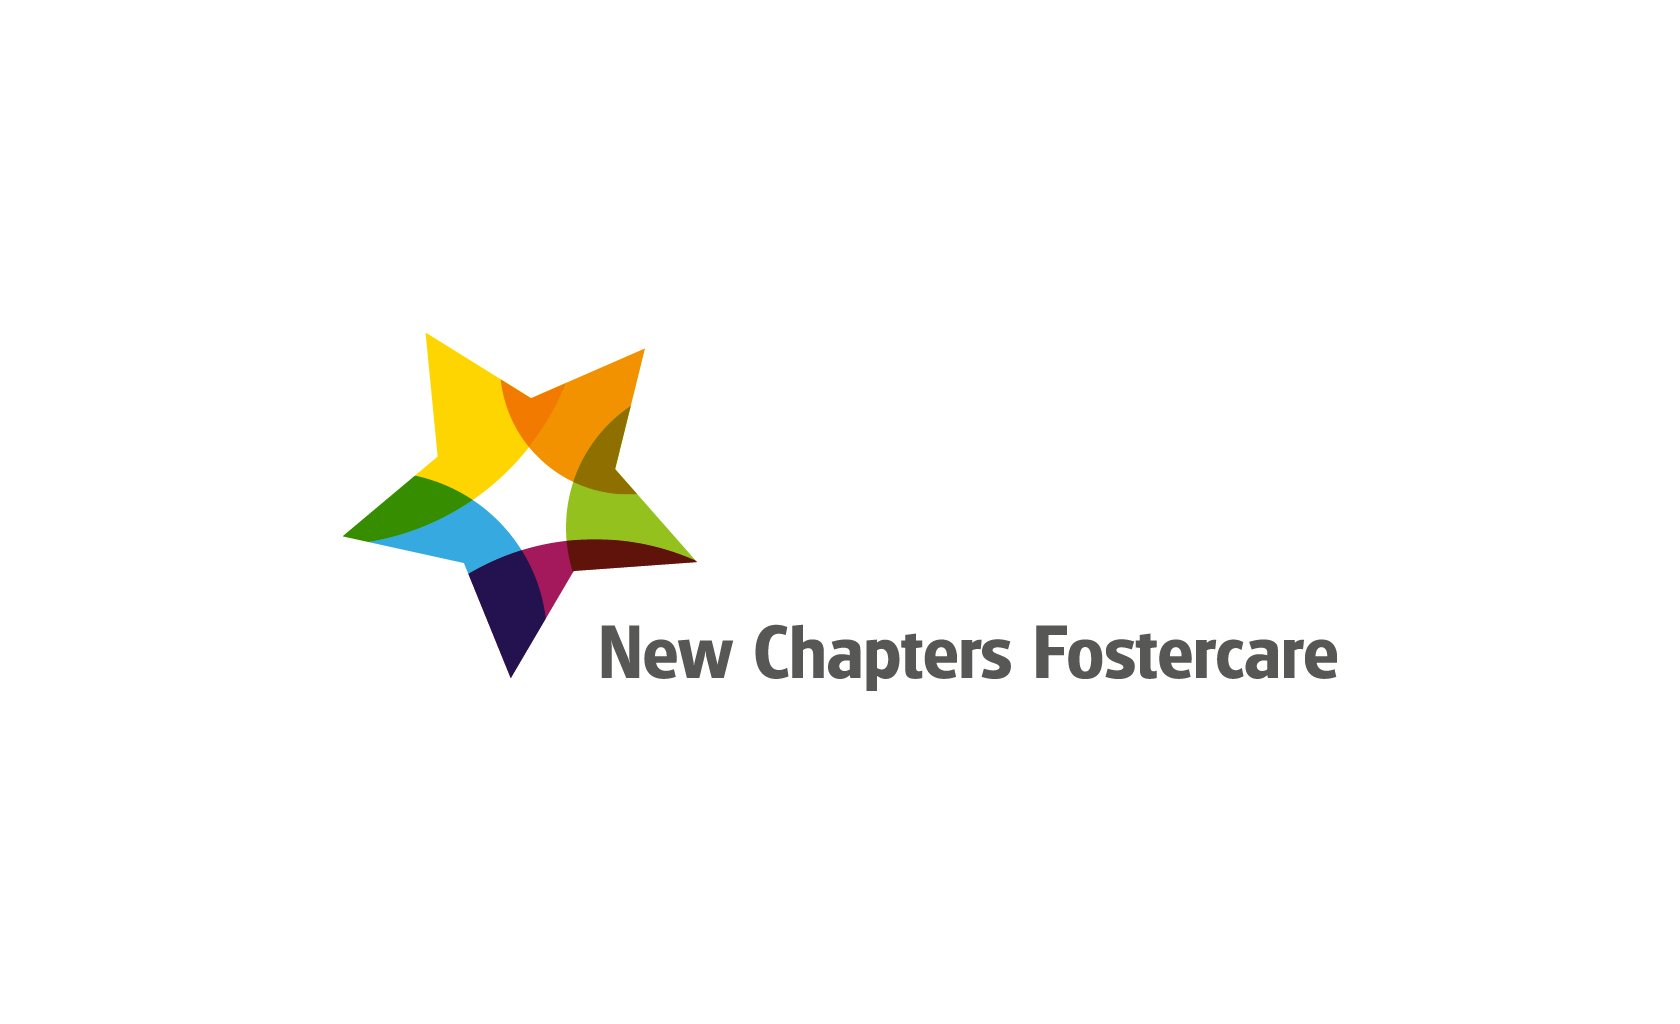 New Chapters Fostercare